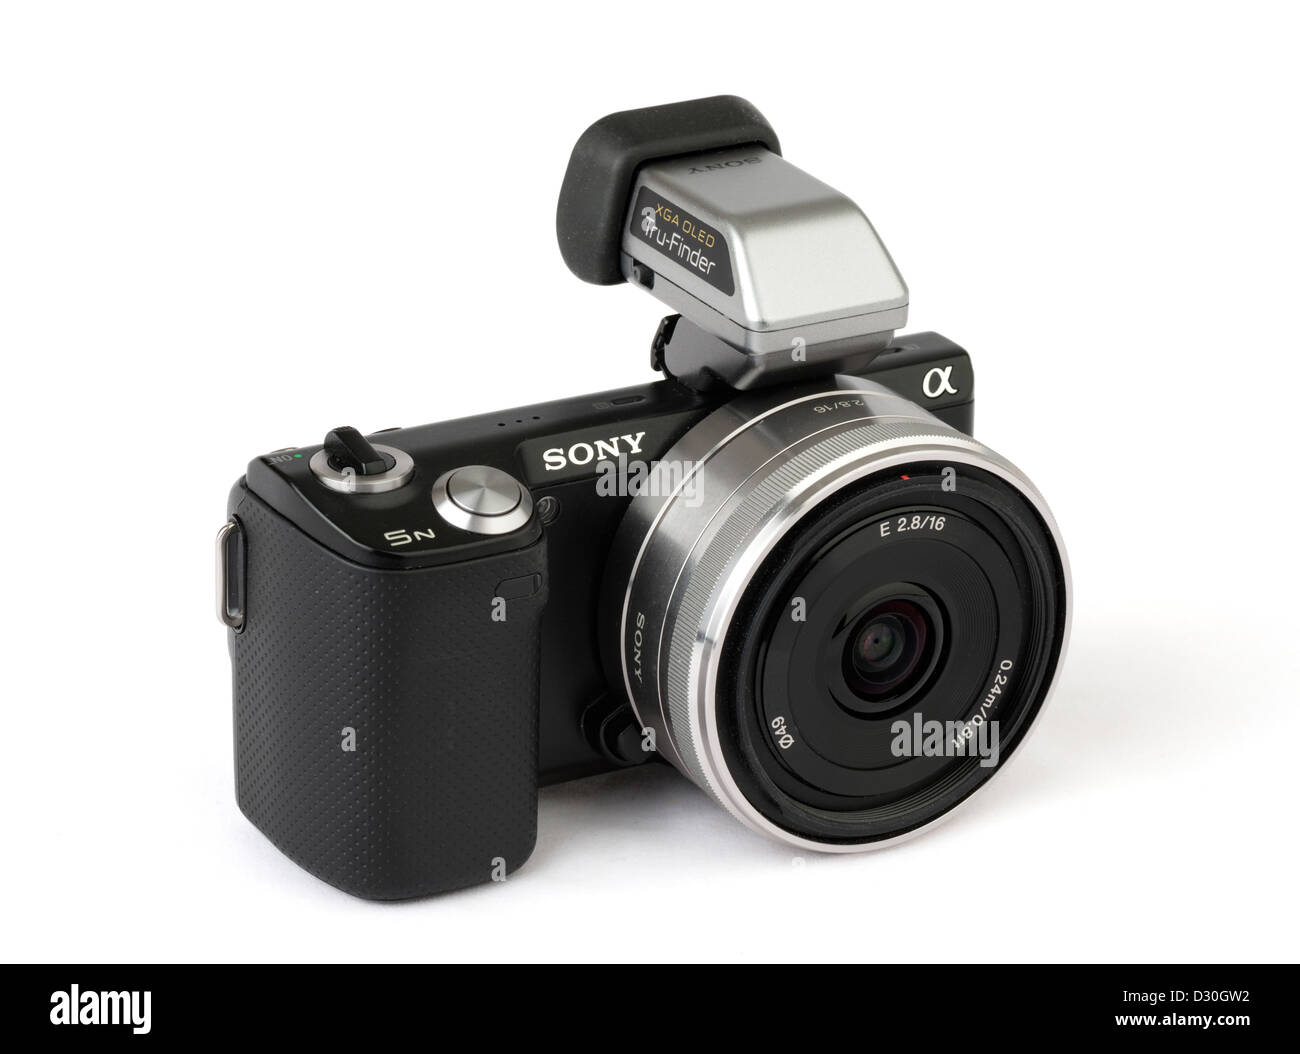 Sony Alpha Nex 5N interchangeable lens mirrorless compact camera with OLED electronic viewfinder and 16mm pancake - Stock Image